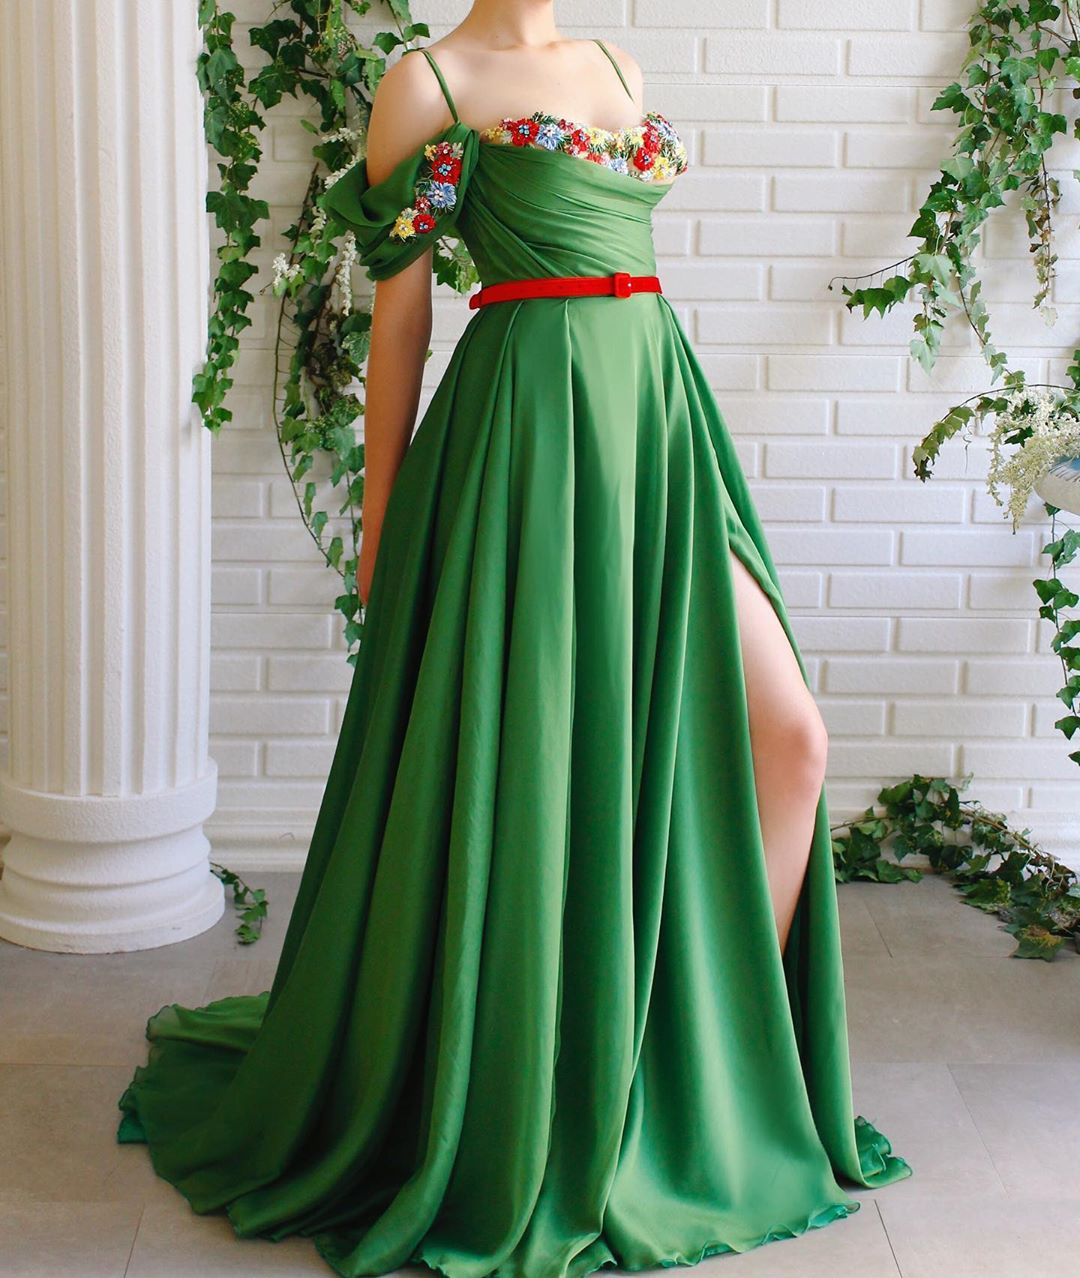 Green Strap with Sweetheart Neckline & Flowers with A High Slit.